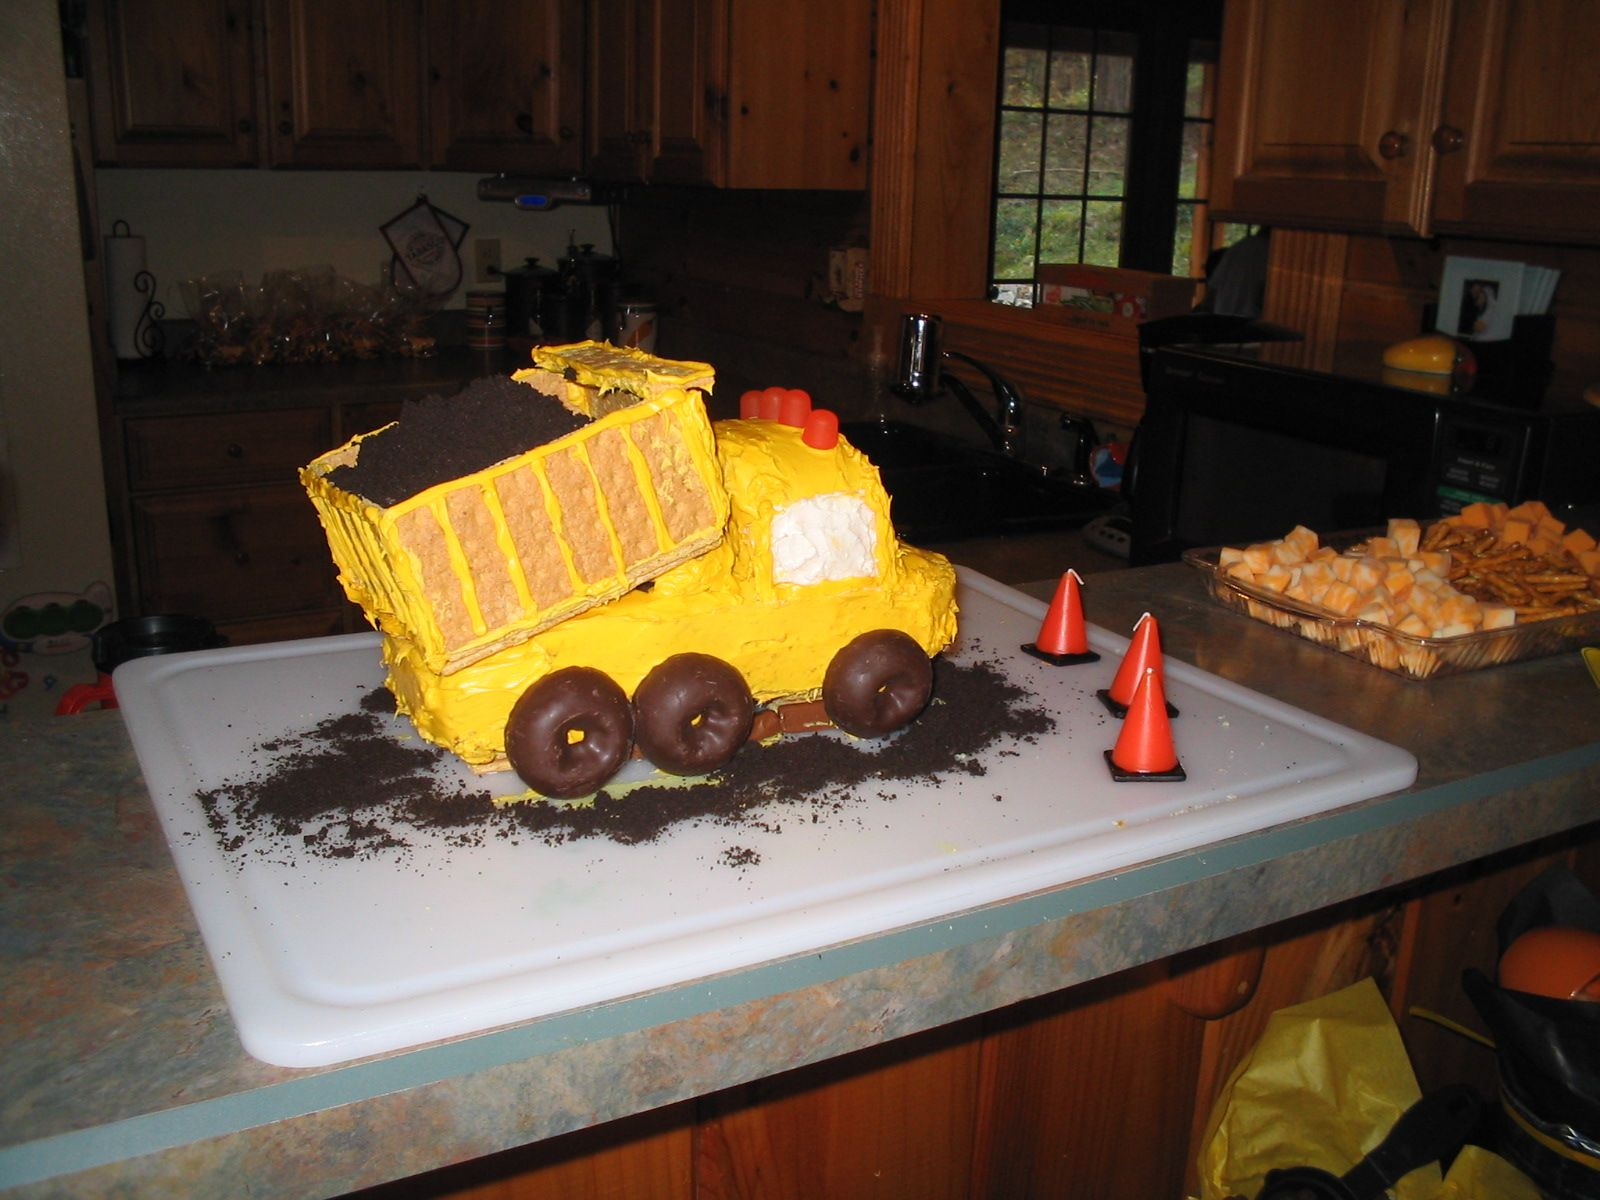 A ConstructionThemed Party Truck birthday cakes Dump trucks and